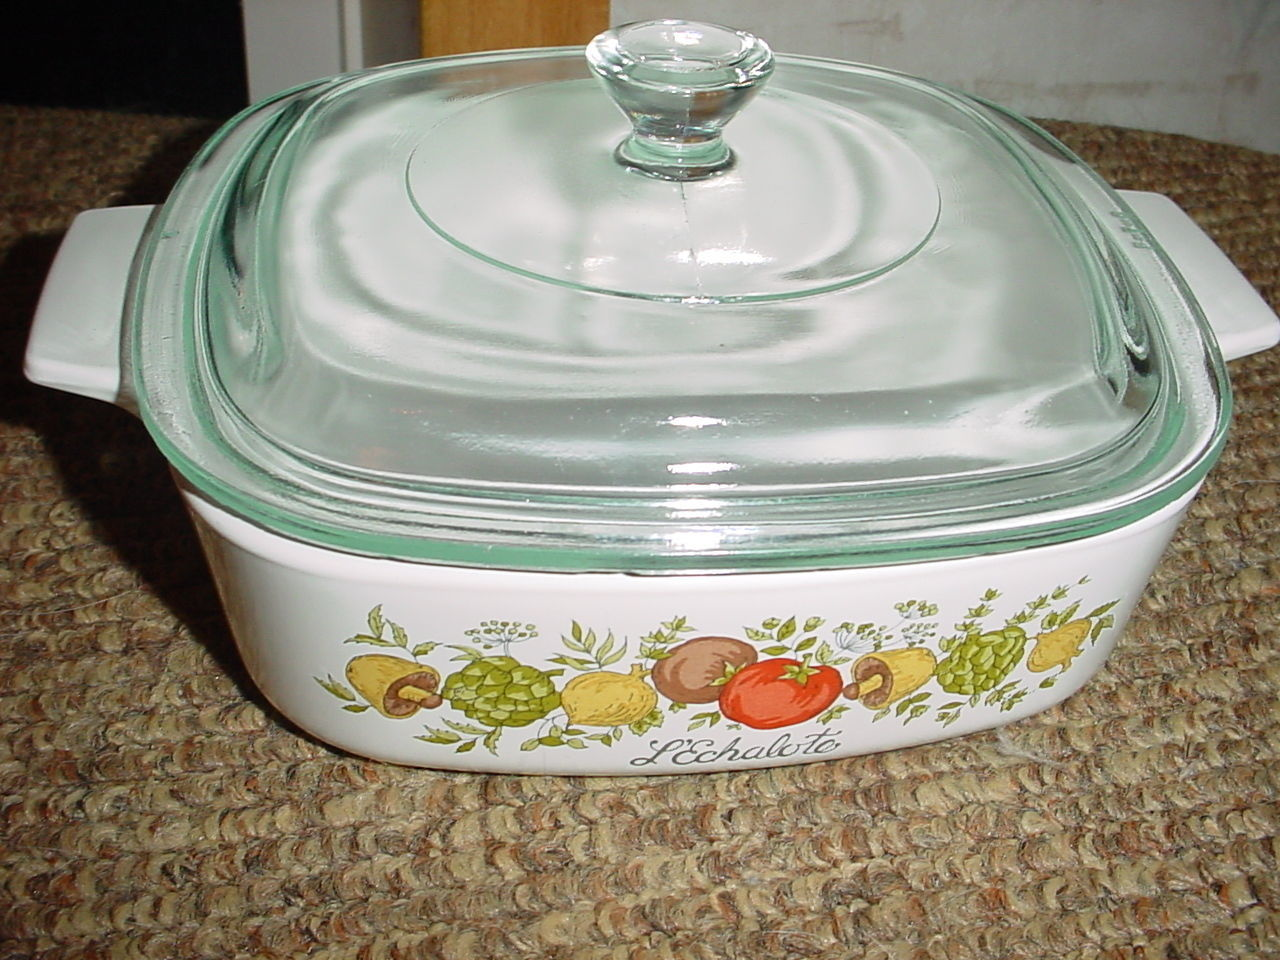 Primary image for CORNING WARE SPICE OF LIFE CASSEROLE DISH A-1-B 1 LITER 1 QUART SIZE + GLASS LID